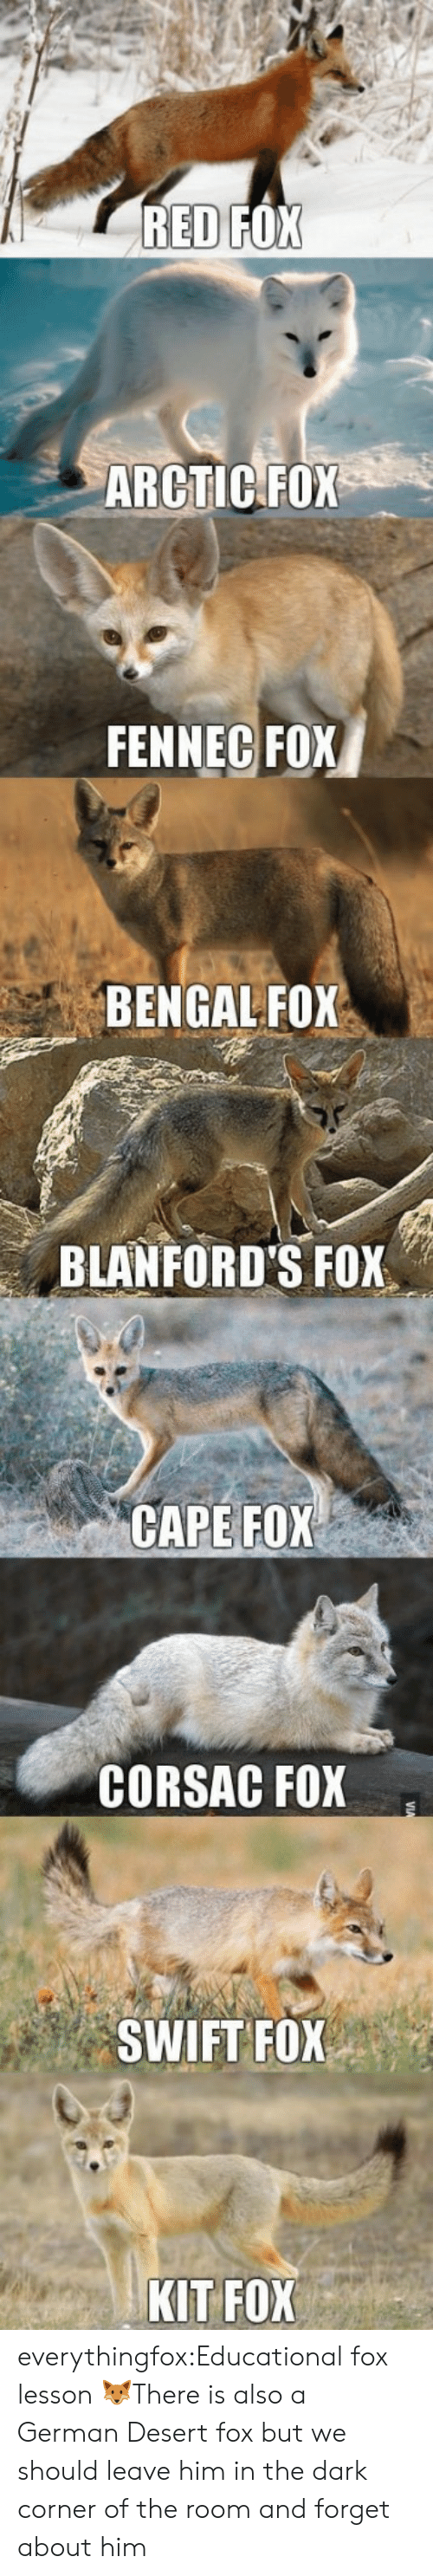 Tumblr, Blog, and Fox: ARCTIC FOX  FENNEC FOX  BENGAL FOX  BLANFORD'S FOX  CAPE FOX  CORSAC FOX  SWIFT FOX  KIT FOX everythingfox:Educational fox lesson 🦊There is also a German Desert fox but we should leave him in the dark corner of the room and forget about him